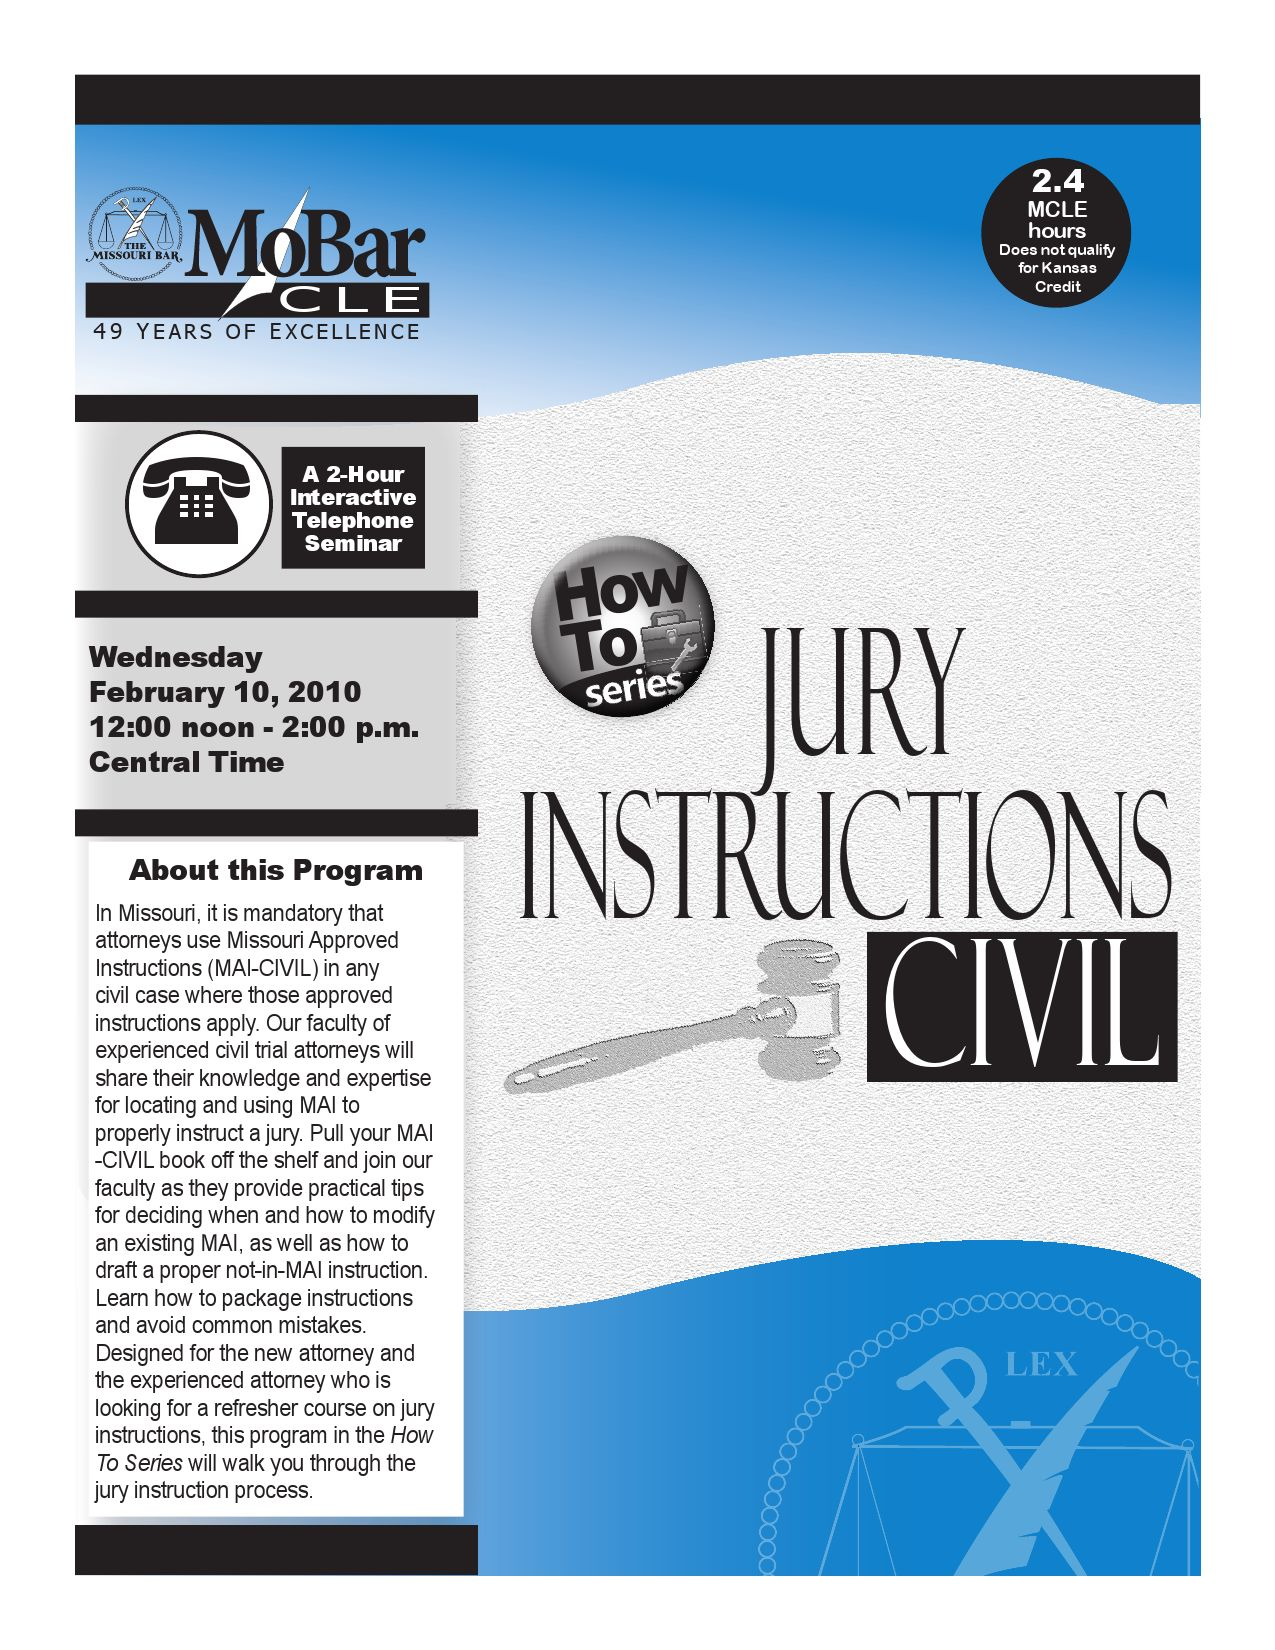 Mobarcle How To Series Jury Instructions Civil By Mobarcle Issuu